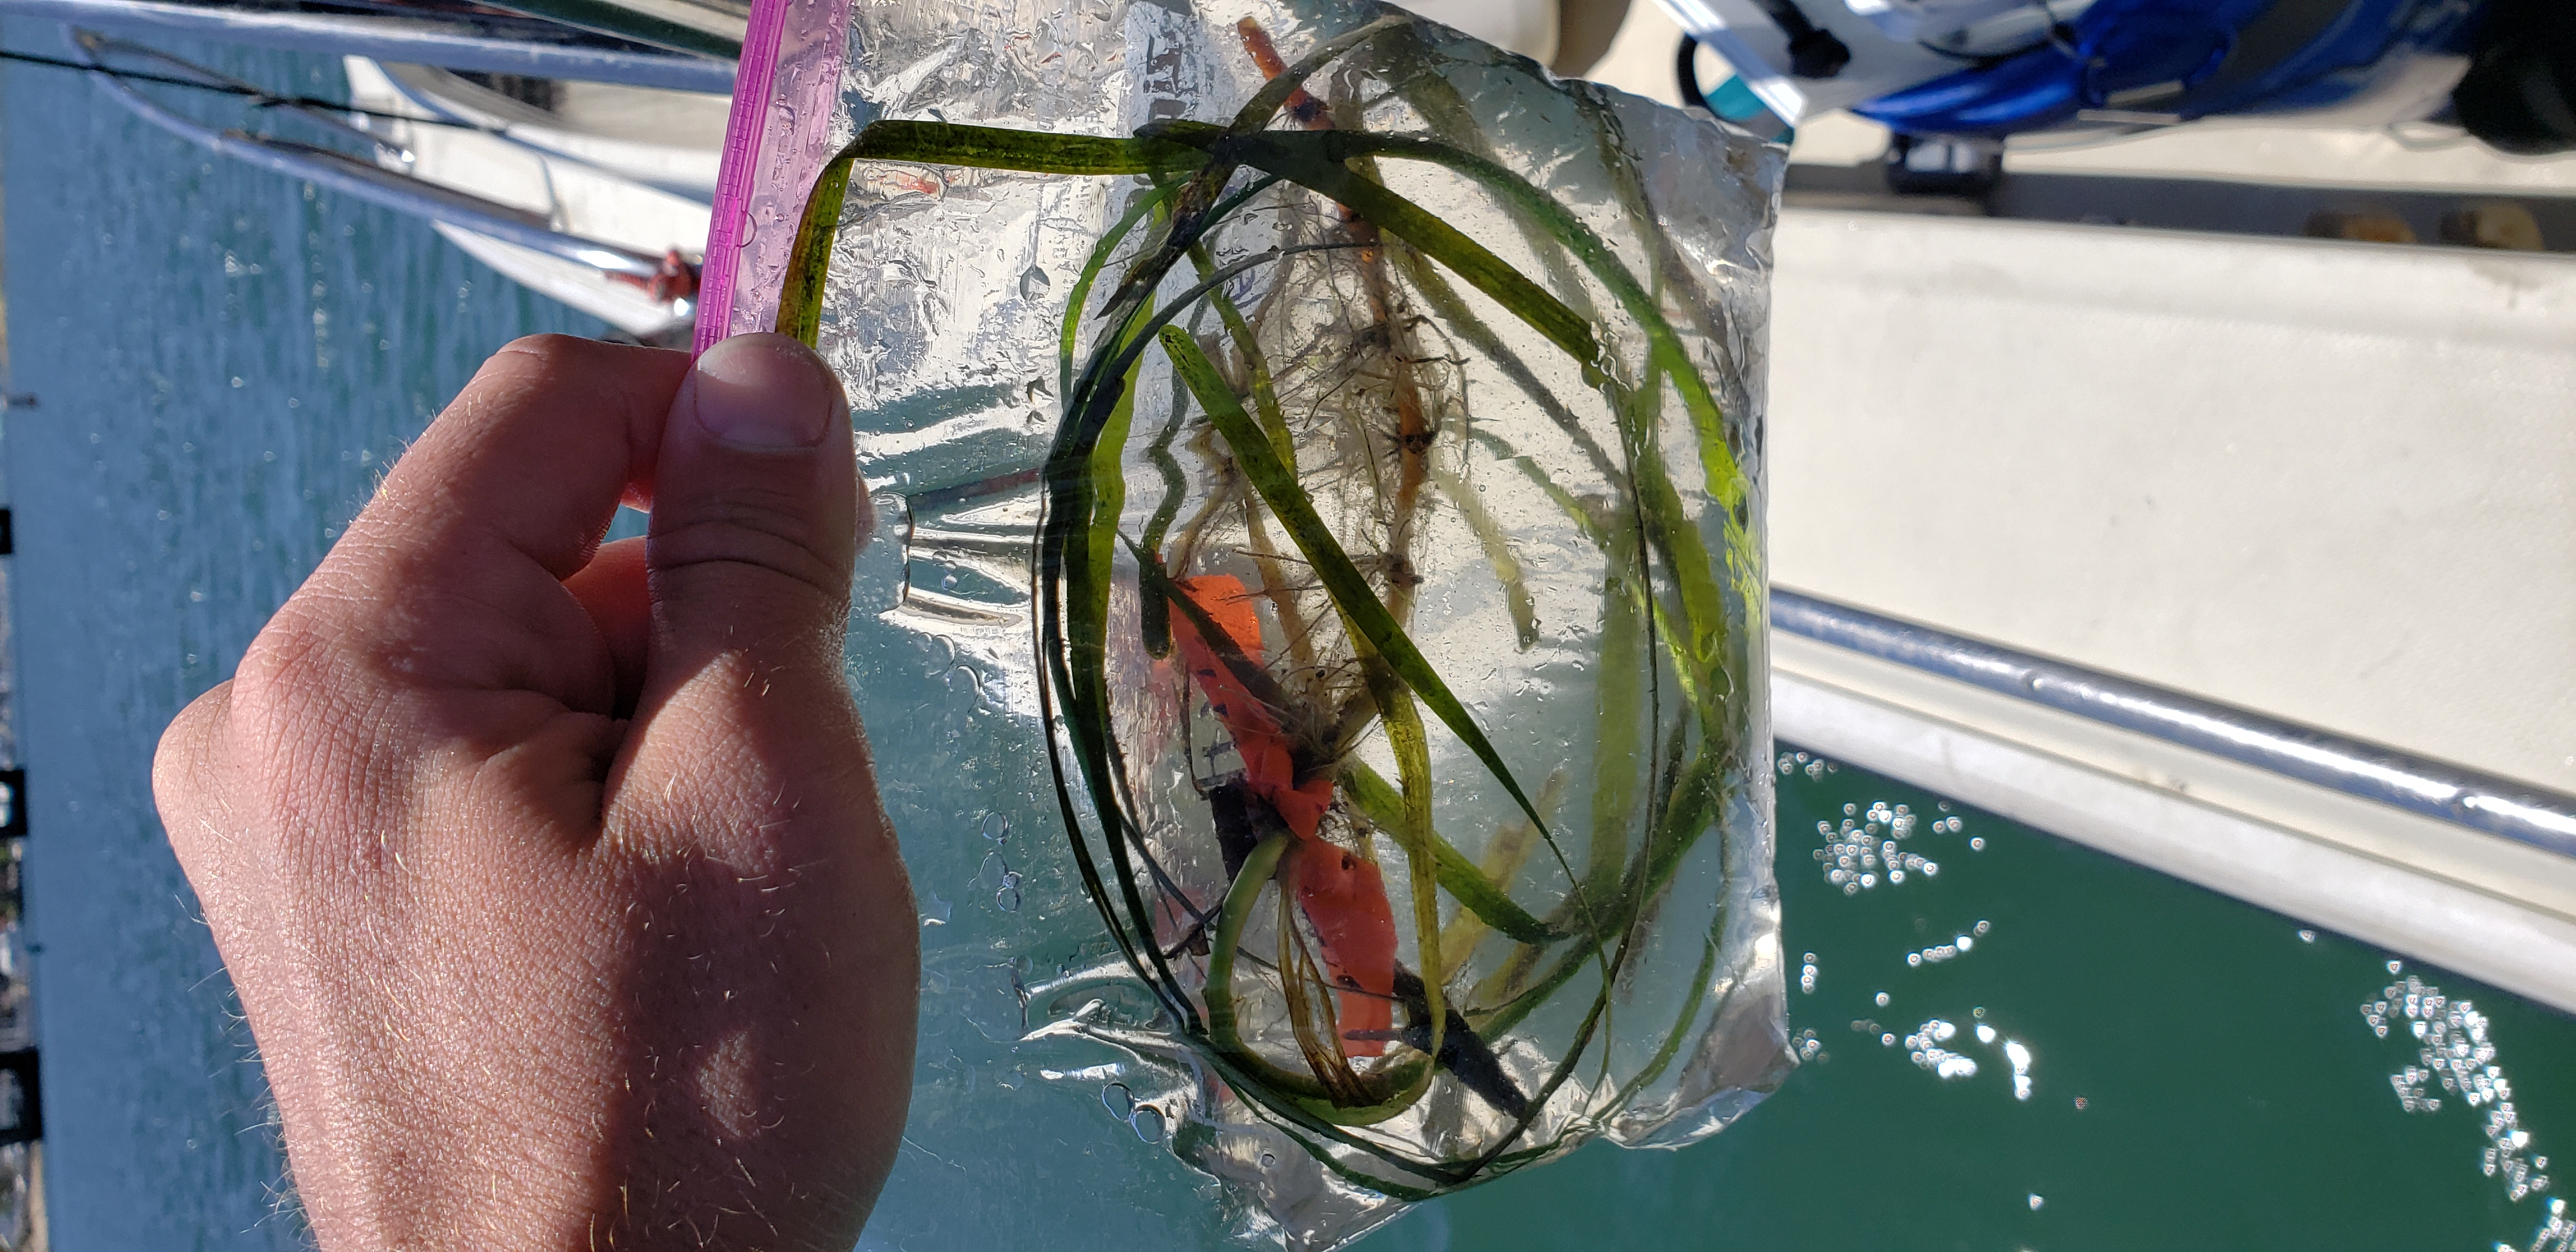 Sample of eelgrass